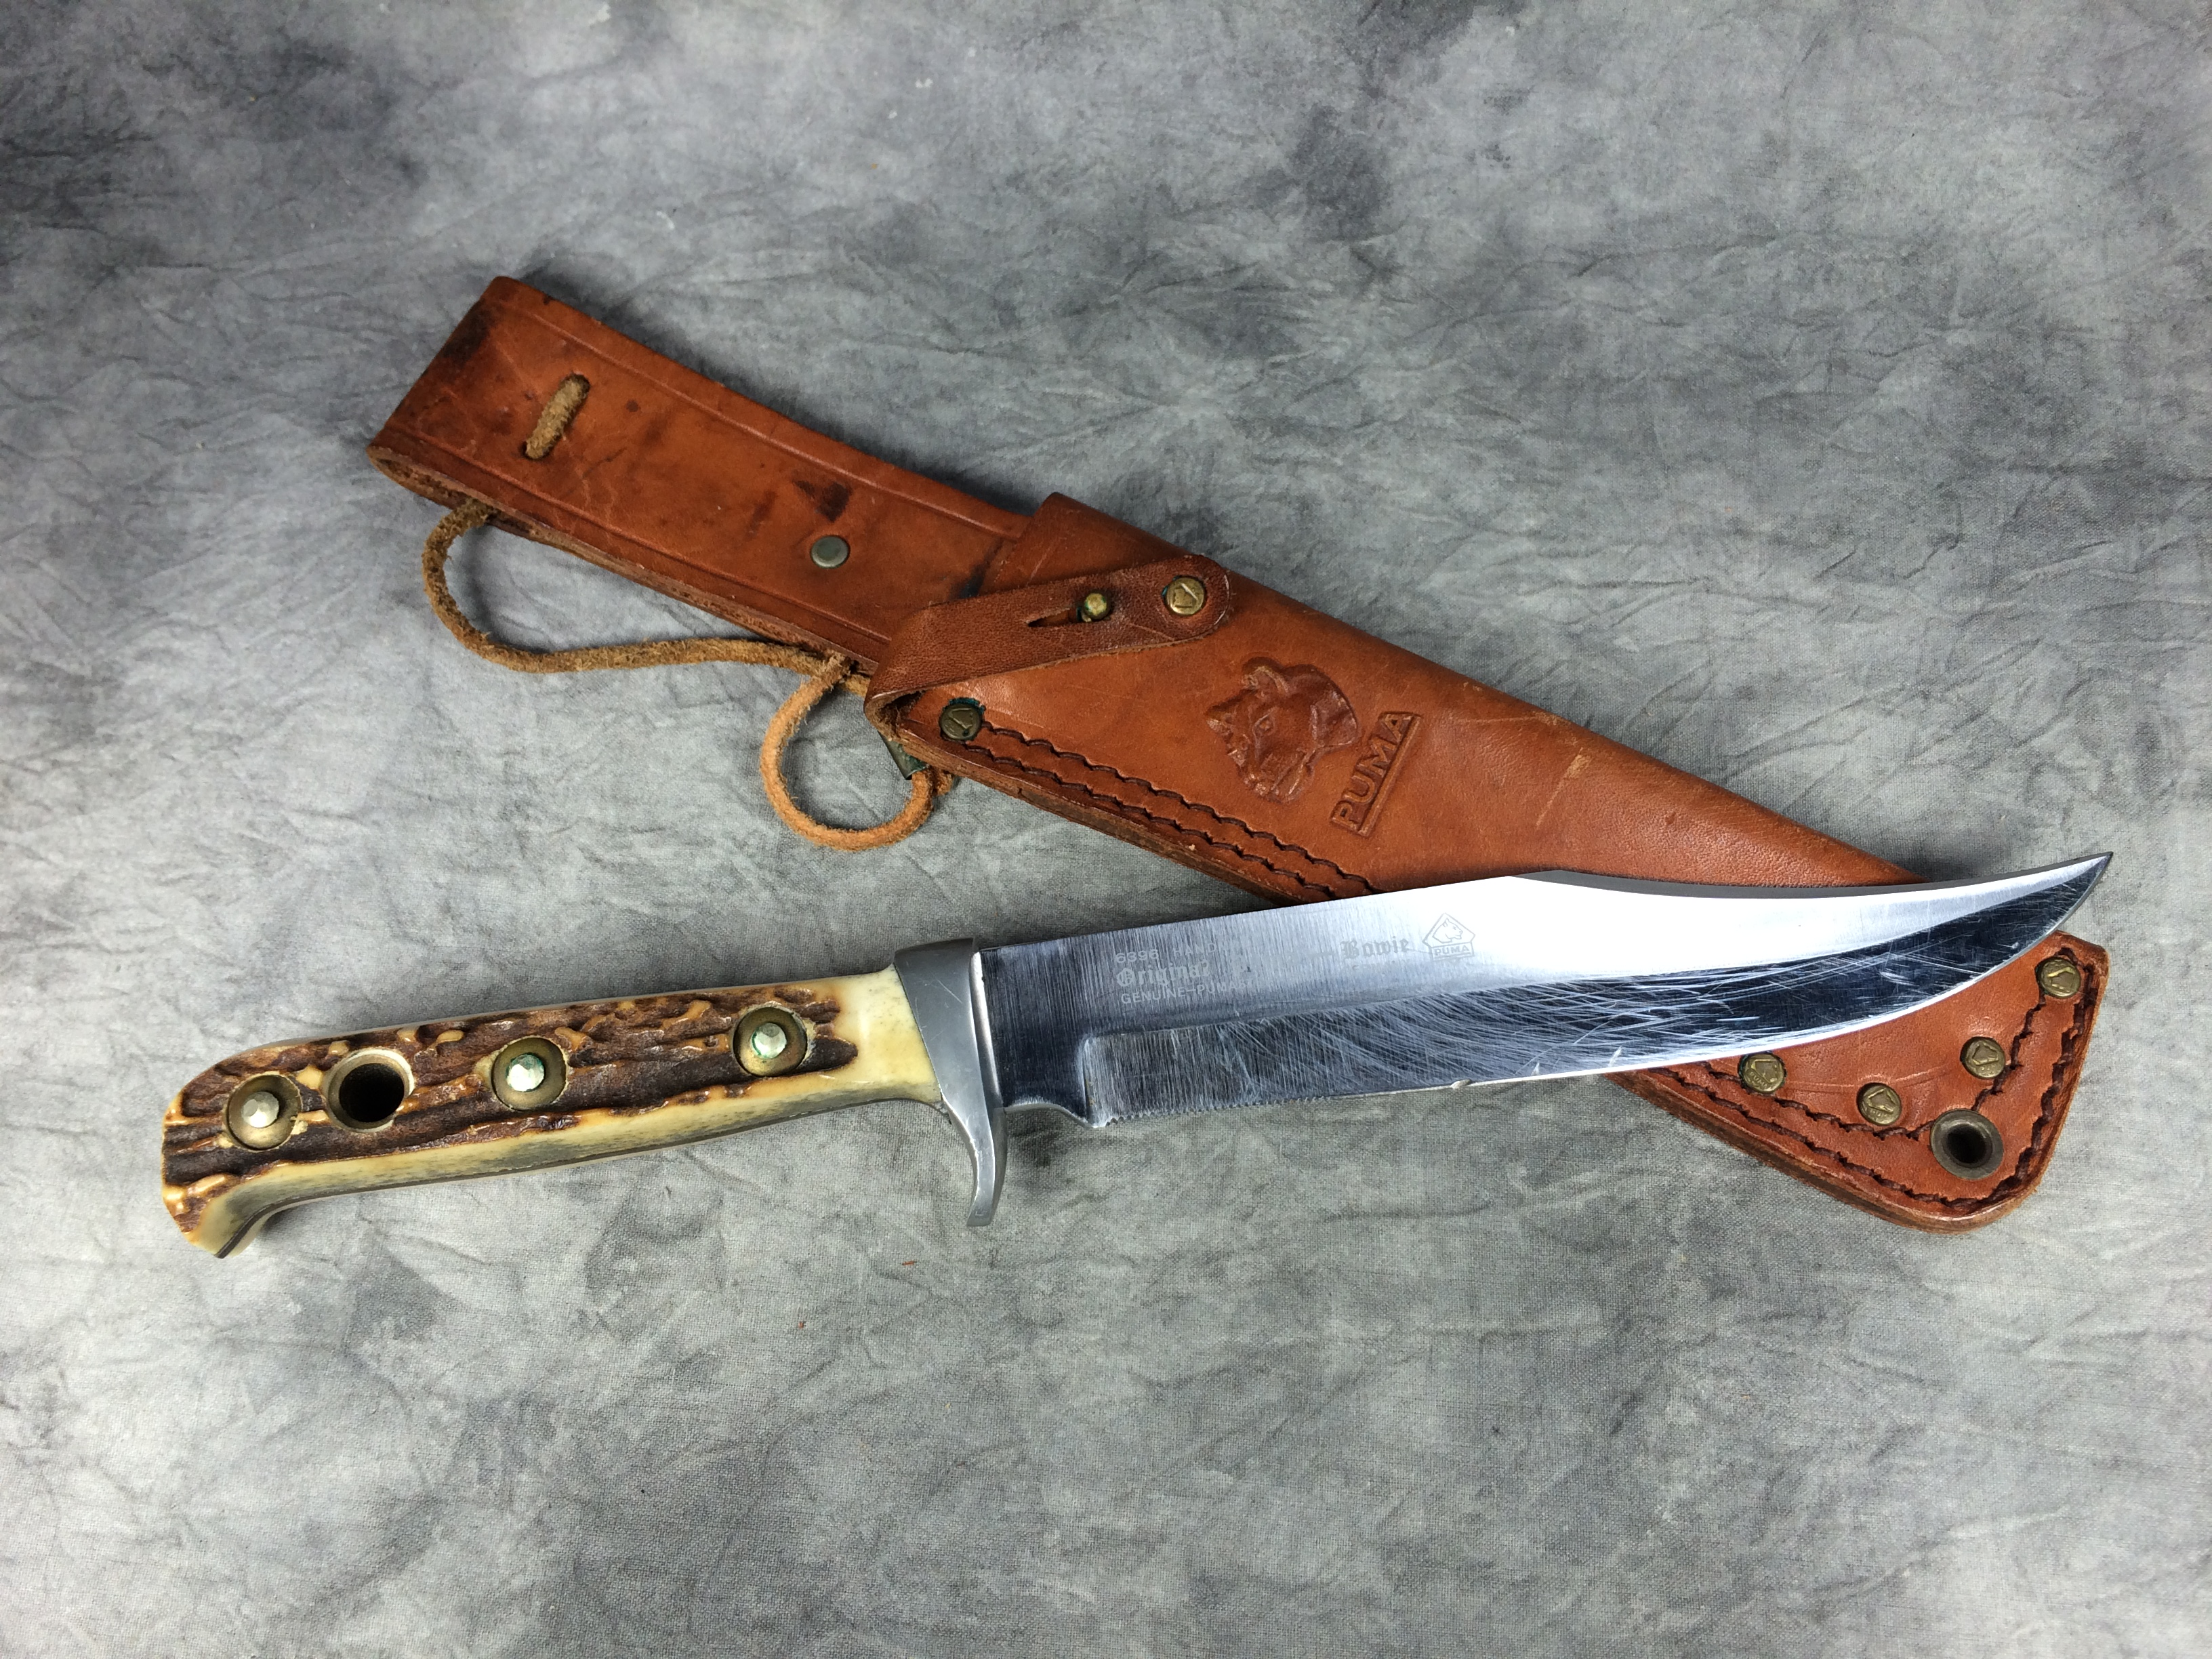 Vintage PUMA 6396 Stag Fixed Blade Bowie Knife Current